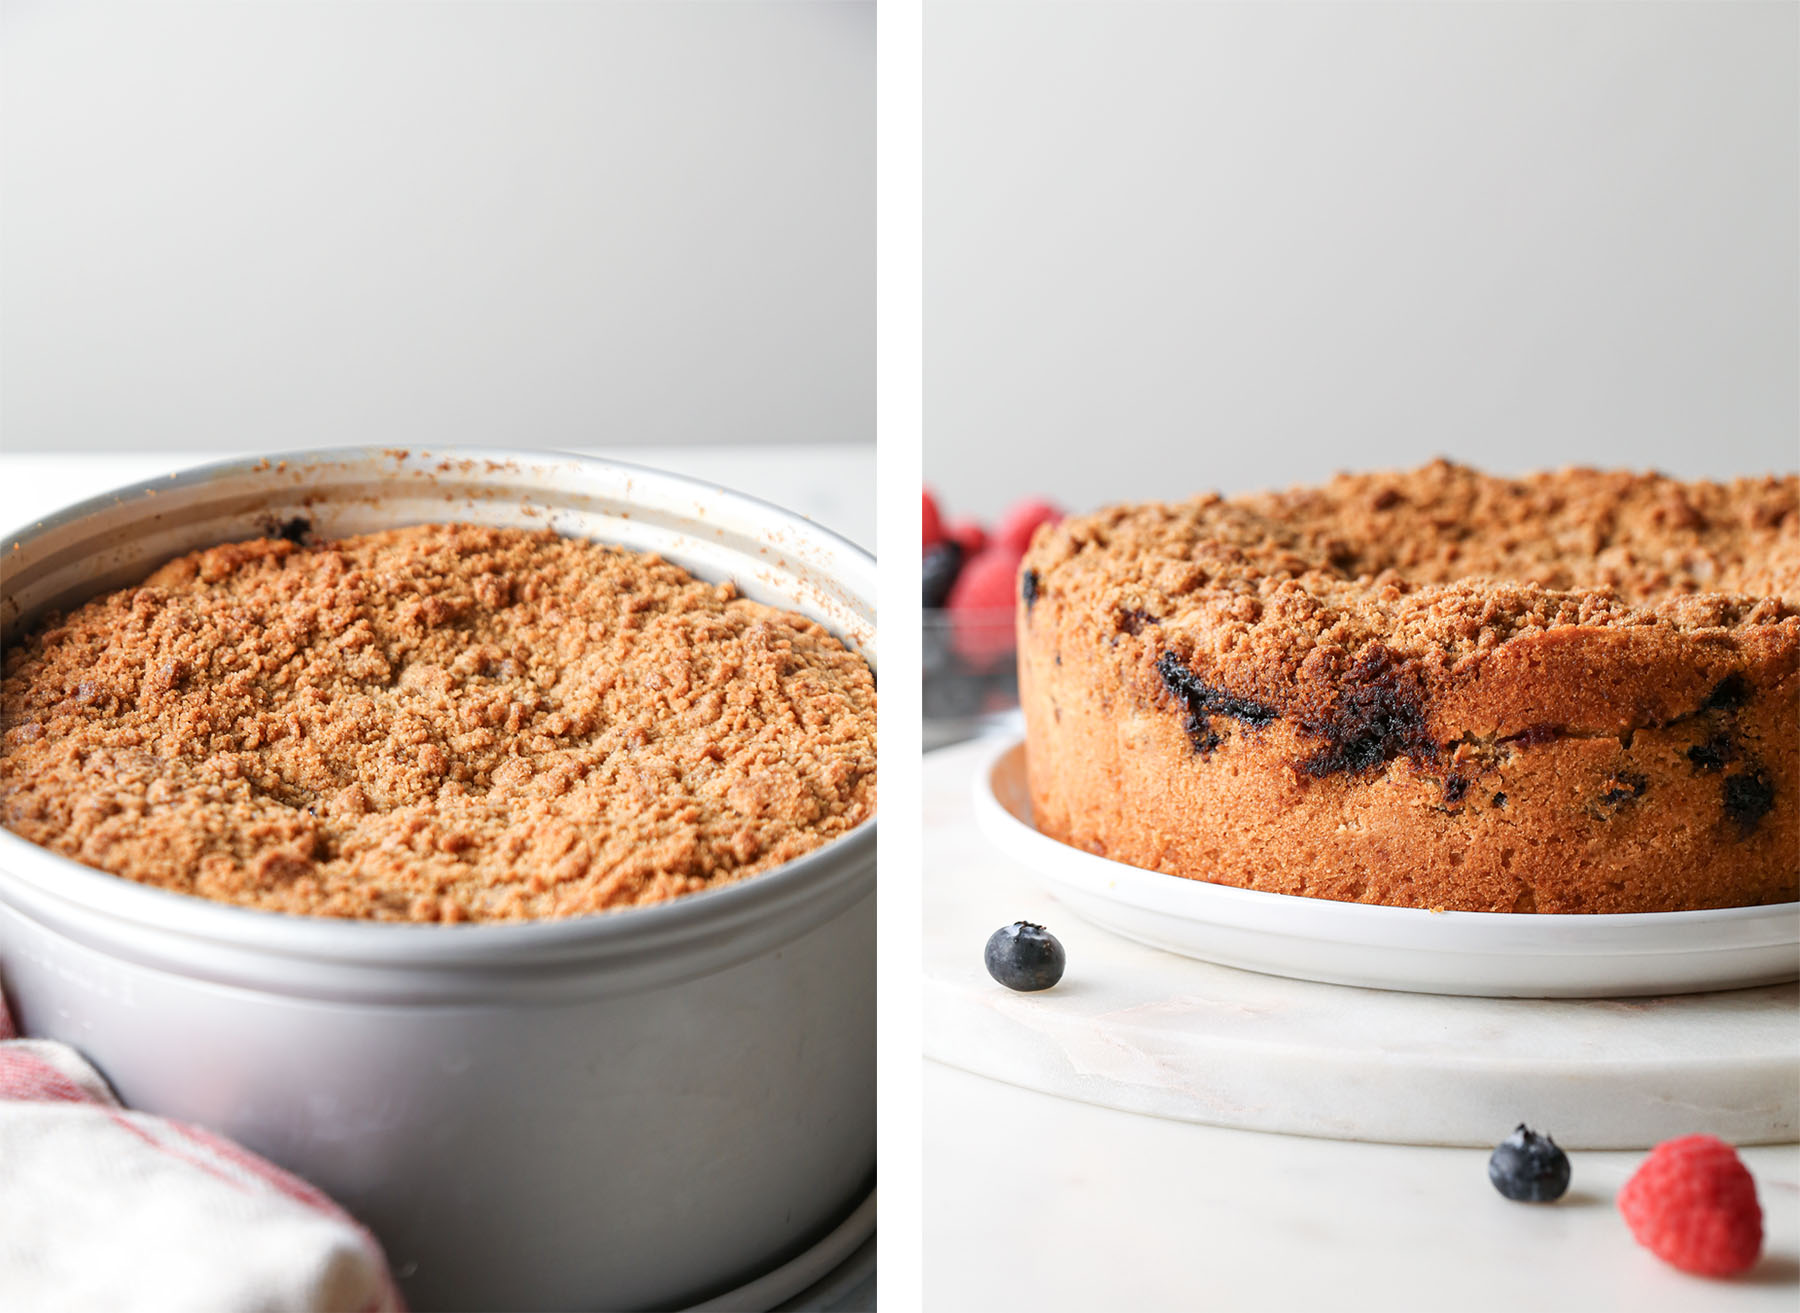 Berry Cream Cheese Coffee Cake After Bake in Pan